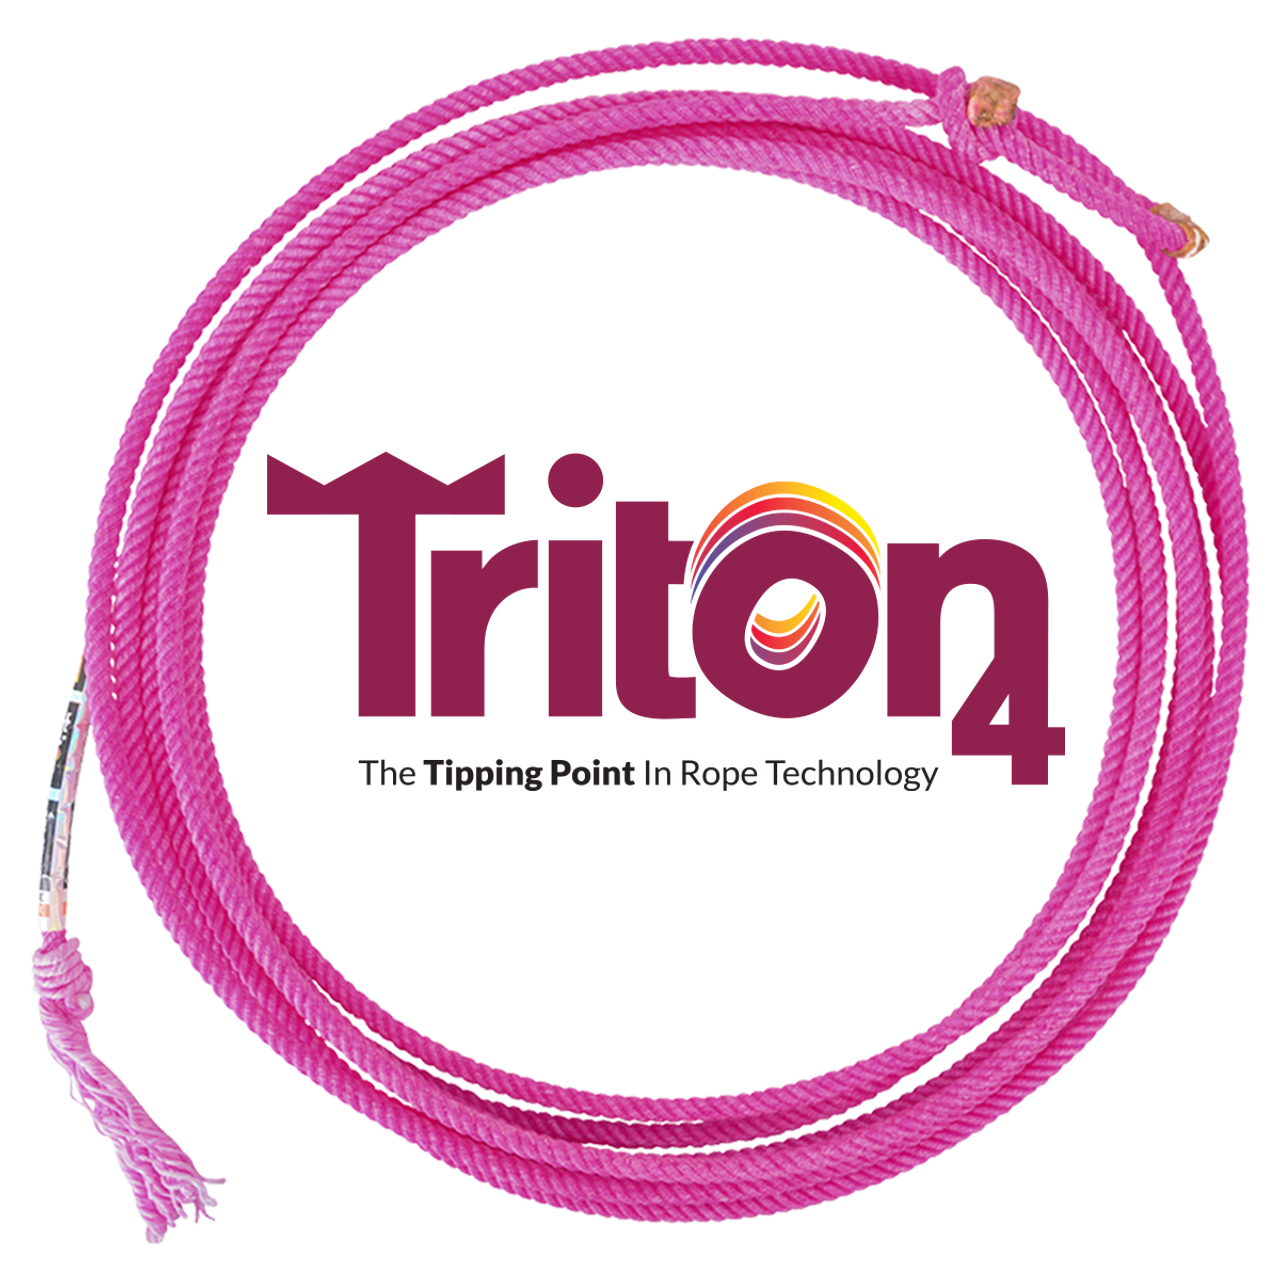 TRITON4 Triton is the new triple-threat in team roping. Created with an innovative blend of three unique fibers, the Triton is a four-strand head and heel rope ideal for any roper's arsenal. Each of the three fibers bring its individual element to the rope. The poly fiber increases the tip size and feel, nylon fiber one gives more body and twist for an open loop and zippy closure, and nylon fiber two adds forgiveness, consistency and overall balance to the blend. This recipe ensures the Triton's superior longevity and performance as Rattler Rope's newest winning weapon.